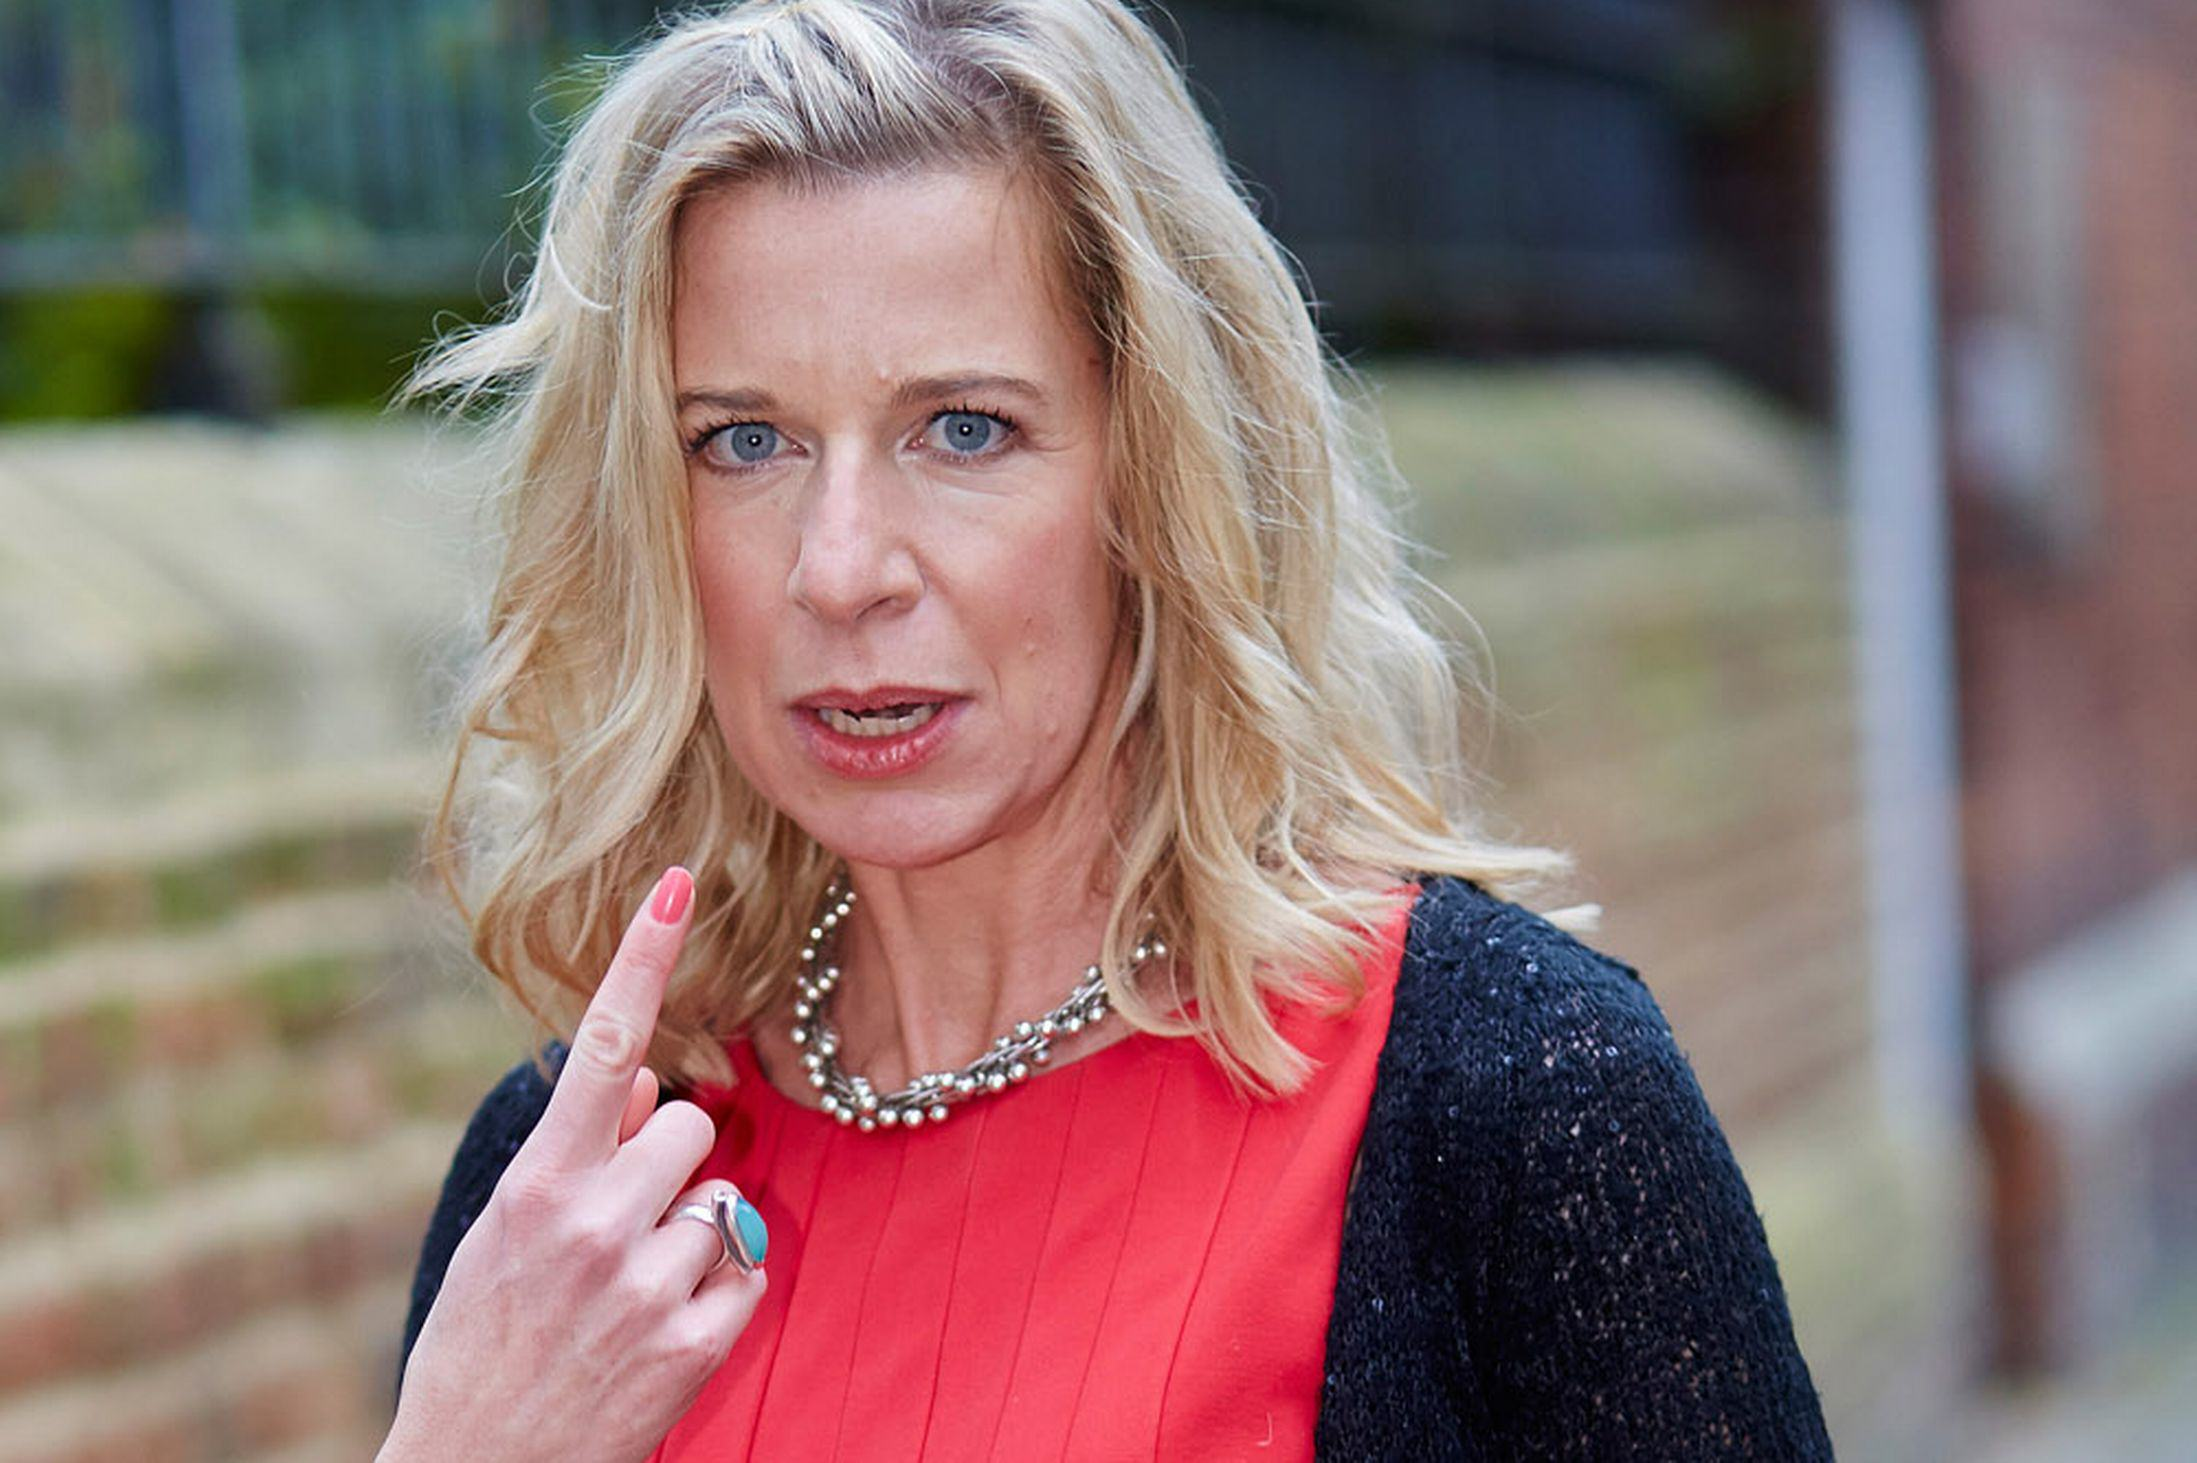 IiCwQlLUm1.jpg Katie Hopkins Says She WOULD Star In Porn For The Right Price